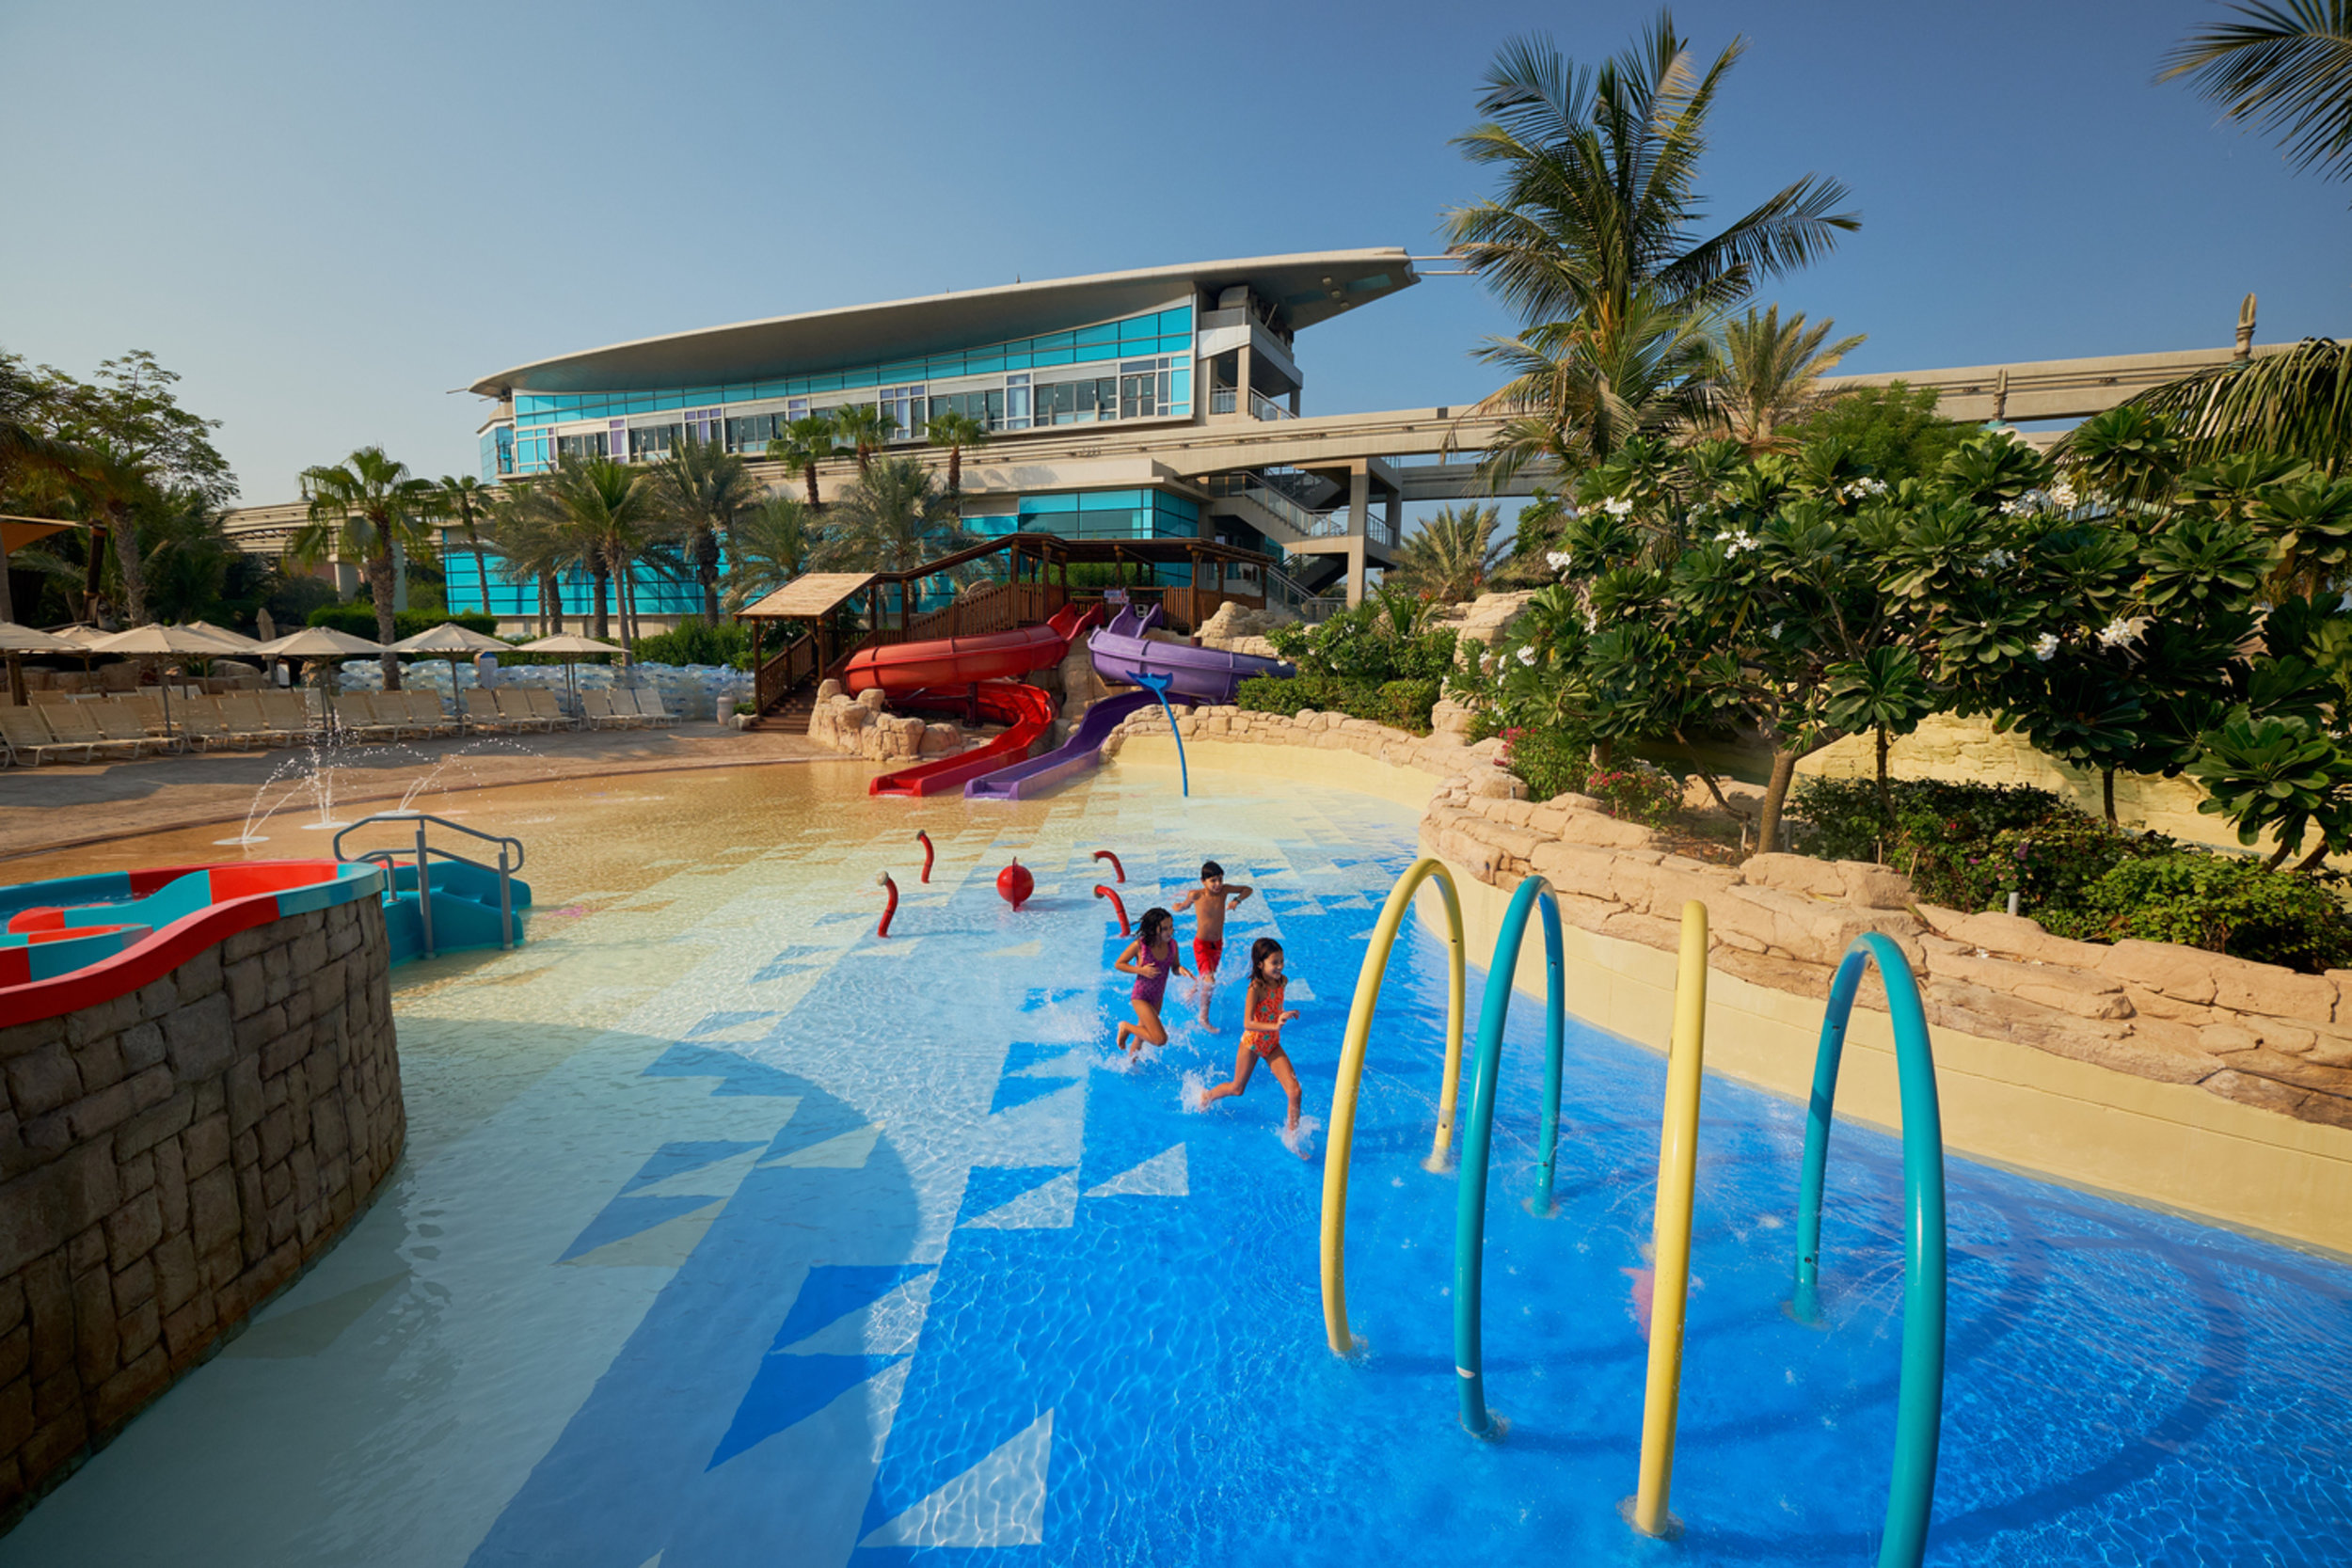 Atlantis_The_Palm_Splash_Pad_RGR27863 (1).jpg